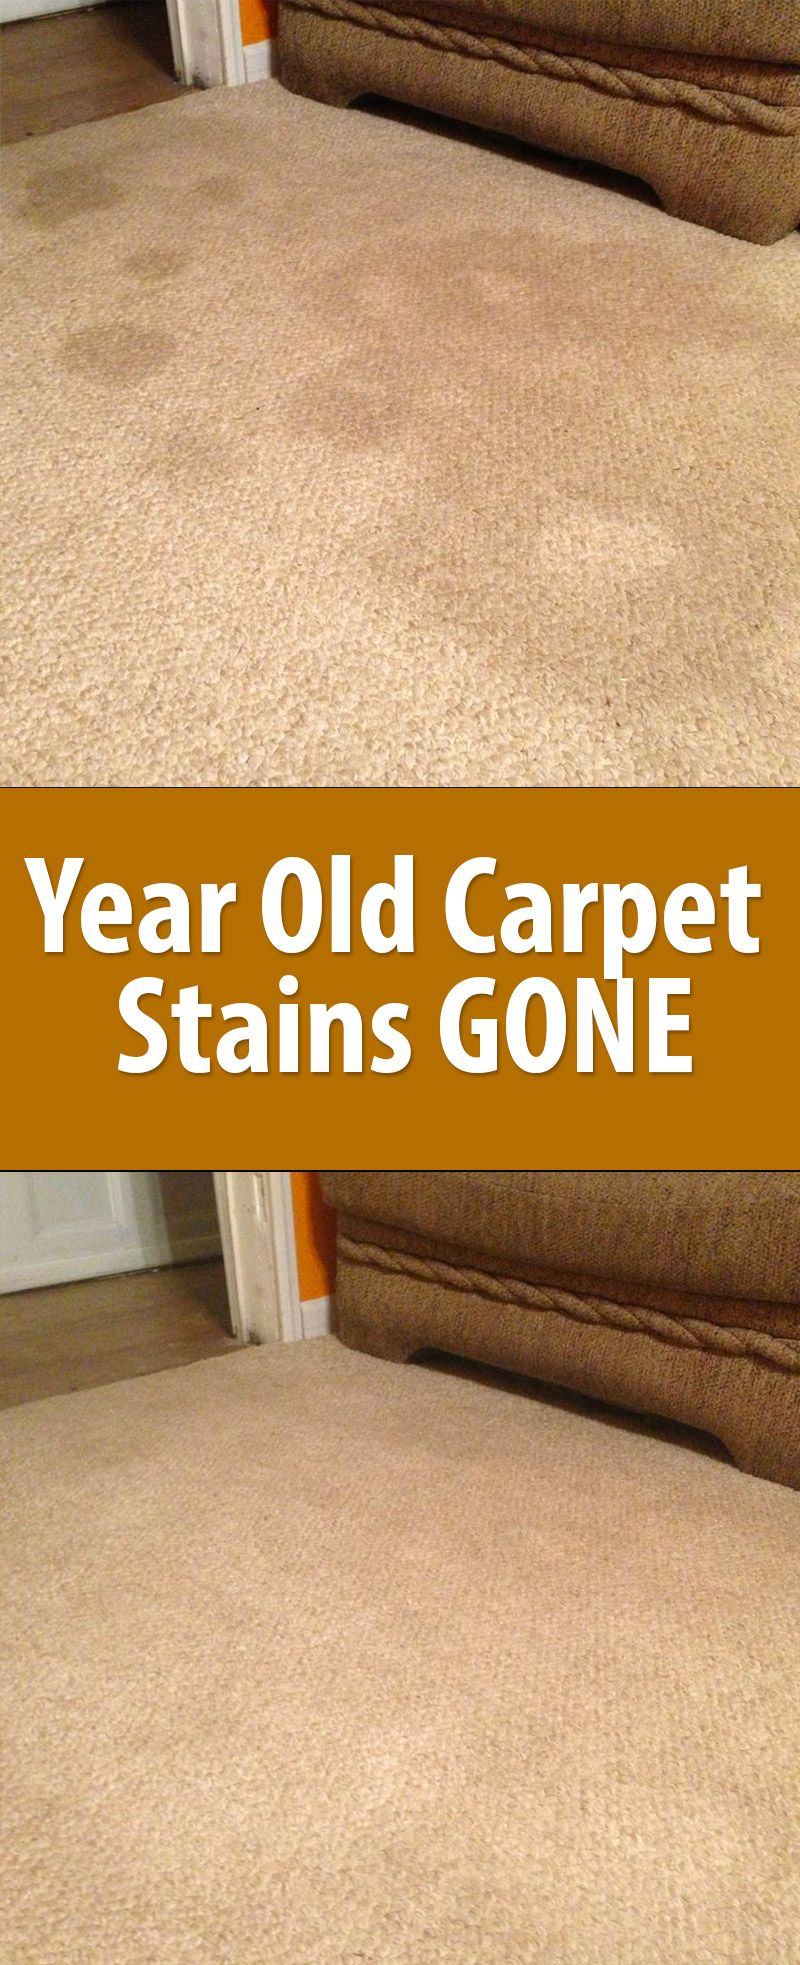 Year Old Carpet Stains Gone Diy Projects Handy Tidbits